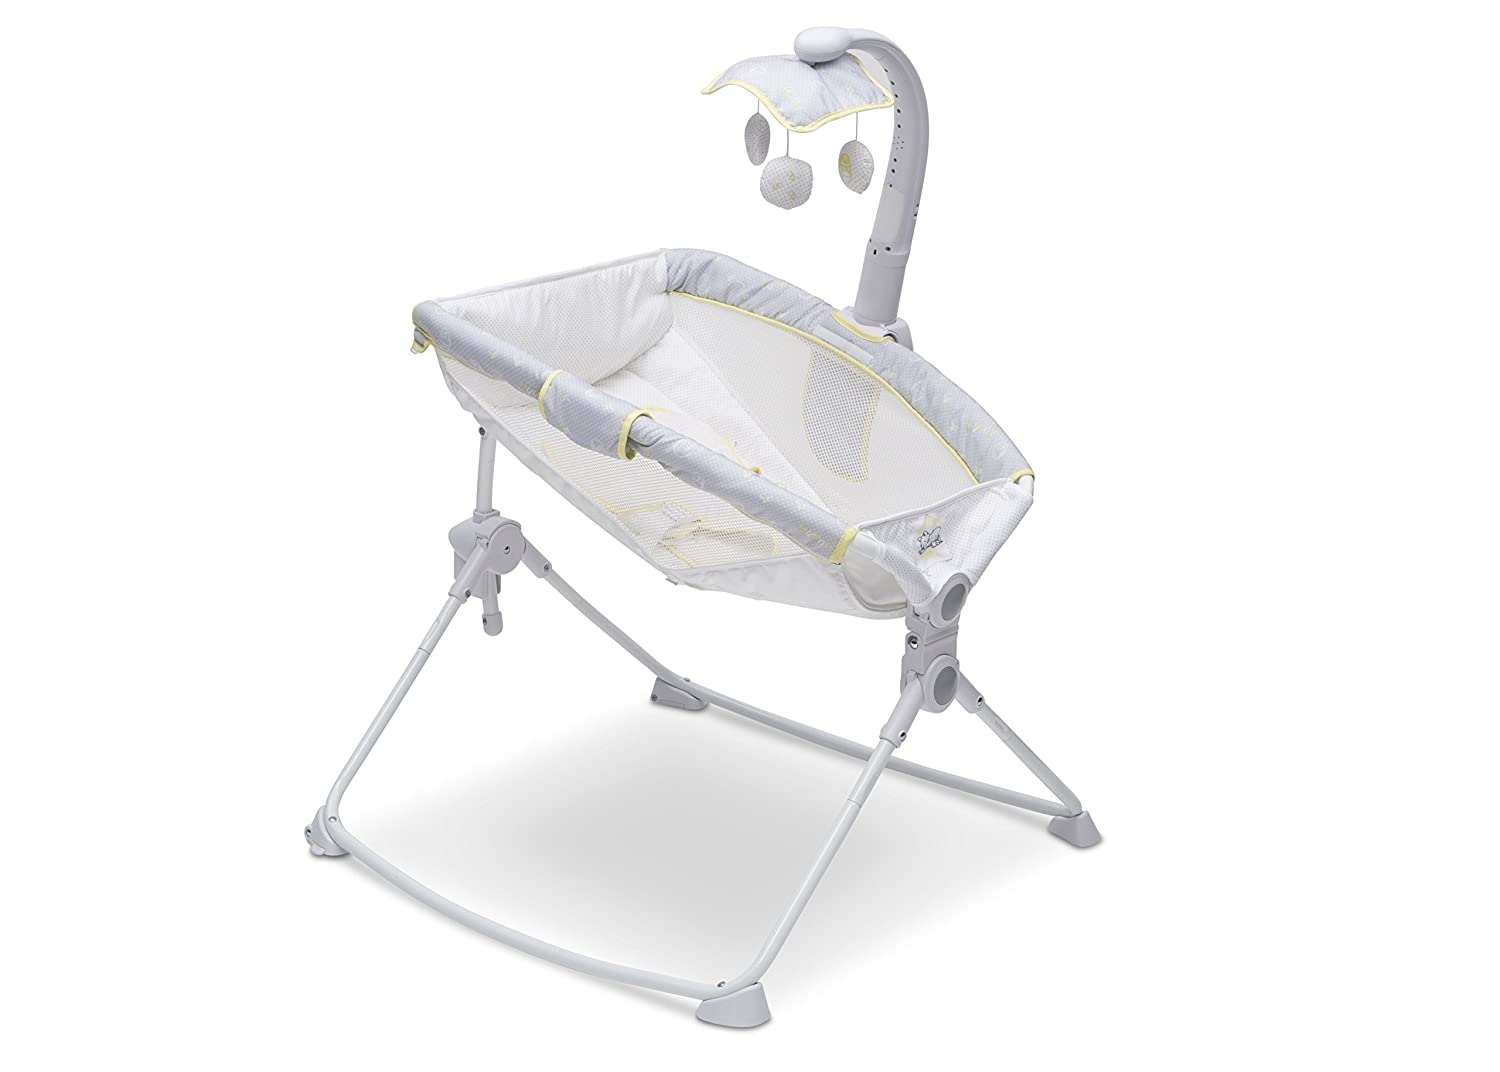 Delta Children Deluxe 3-in-1 Activity Rocker, Feeder and Sleeper for Newborns, Disney Minnie Mouse Delta Enterprise Corp - PLA 27404-942